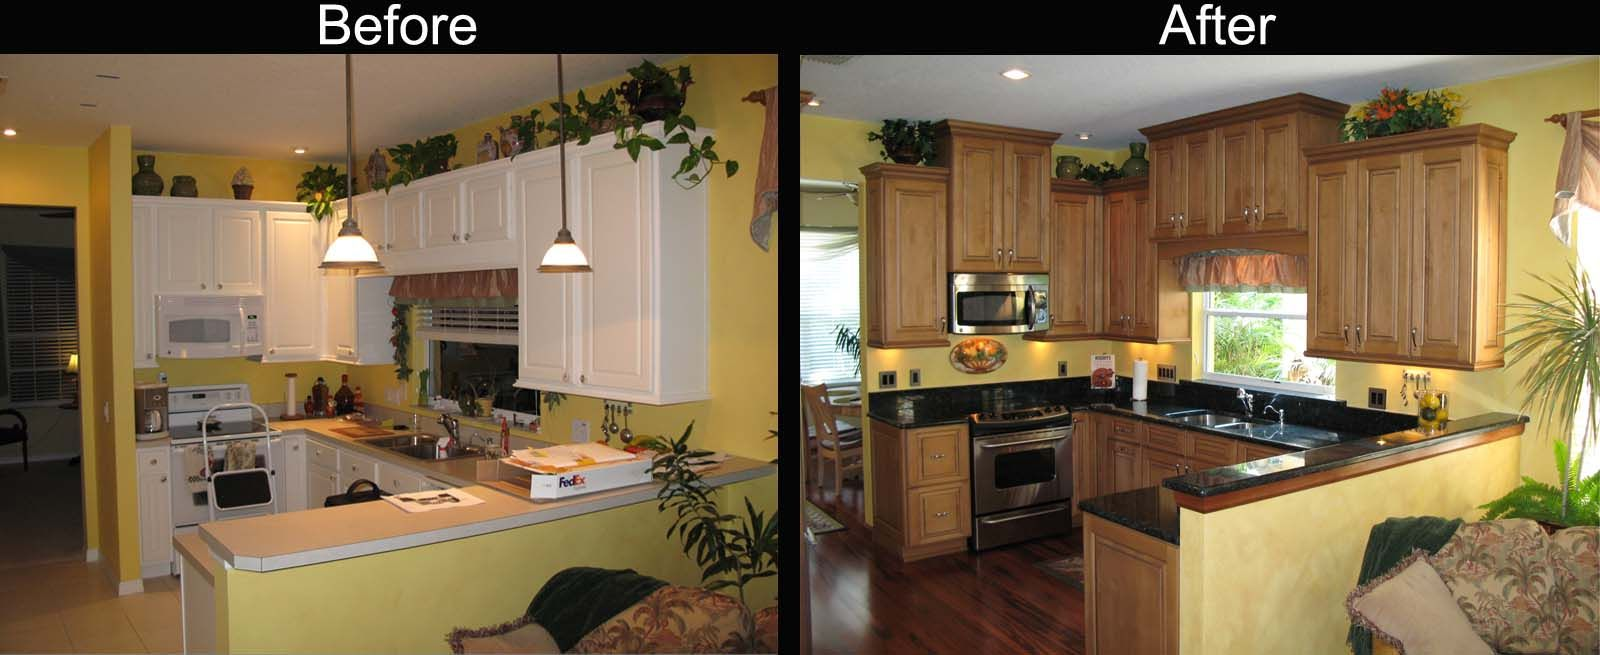 Home Renovation Ideas Before And After Painted Cabinets Before And After Ideas For Your Kitchen